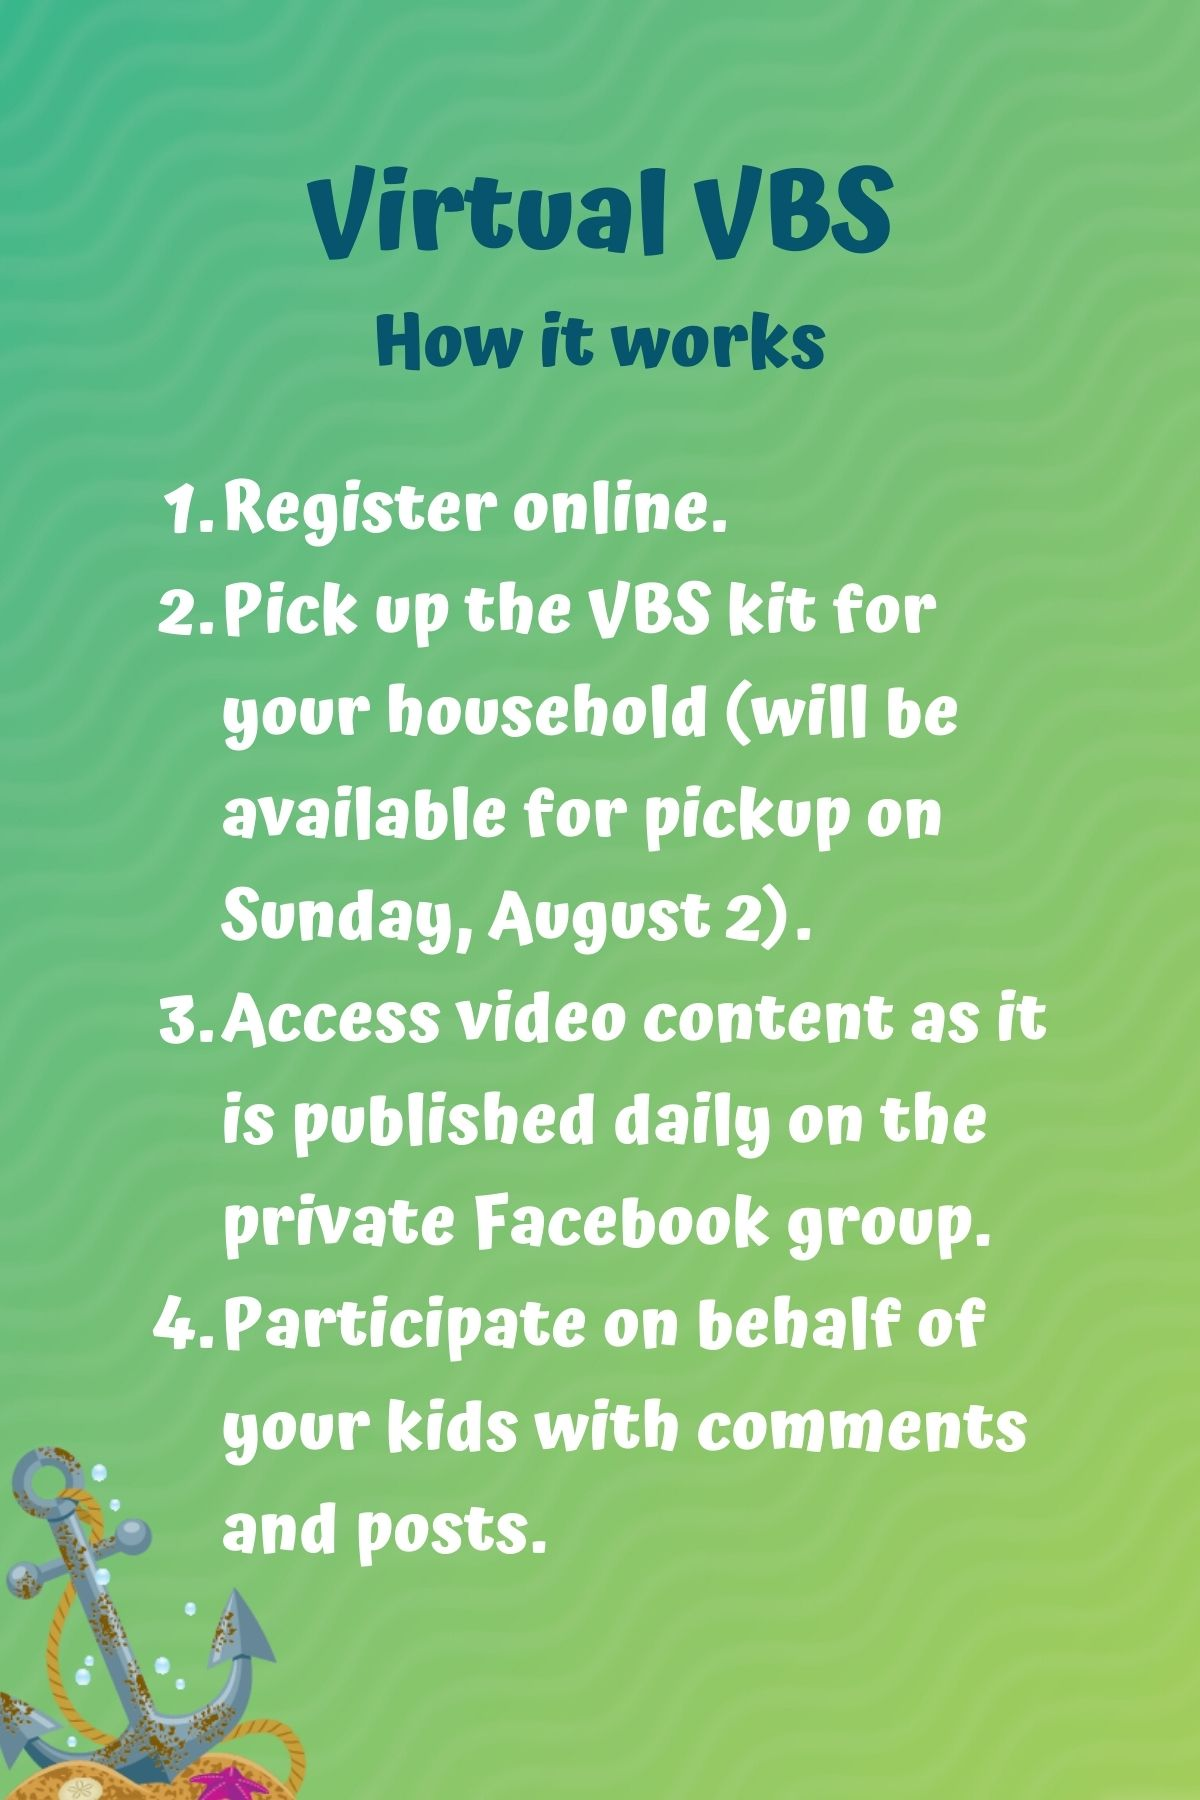 Virtual VBS How To